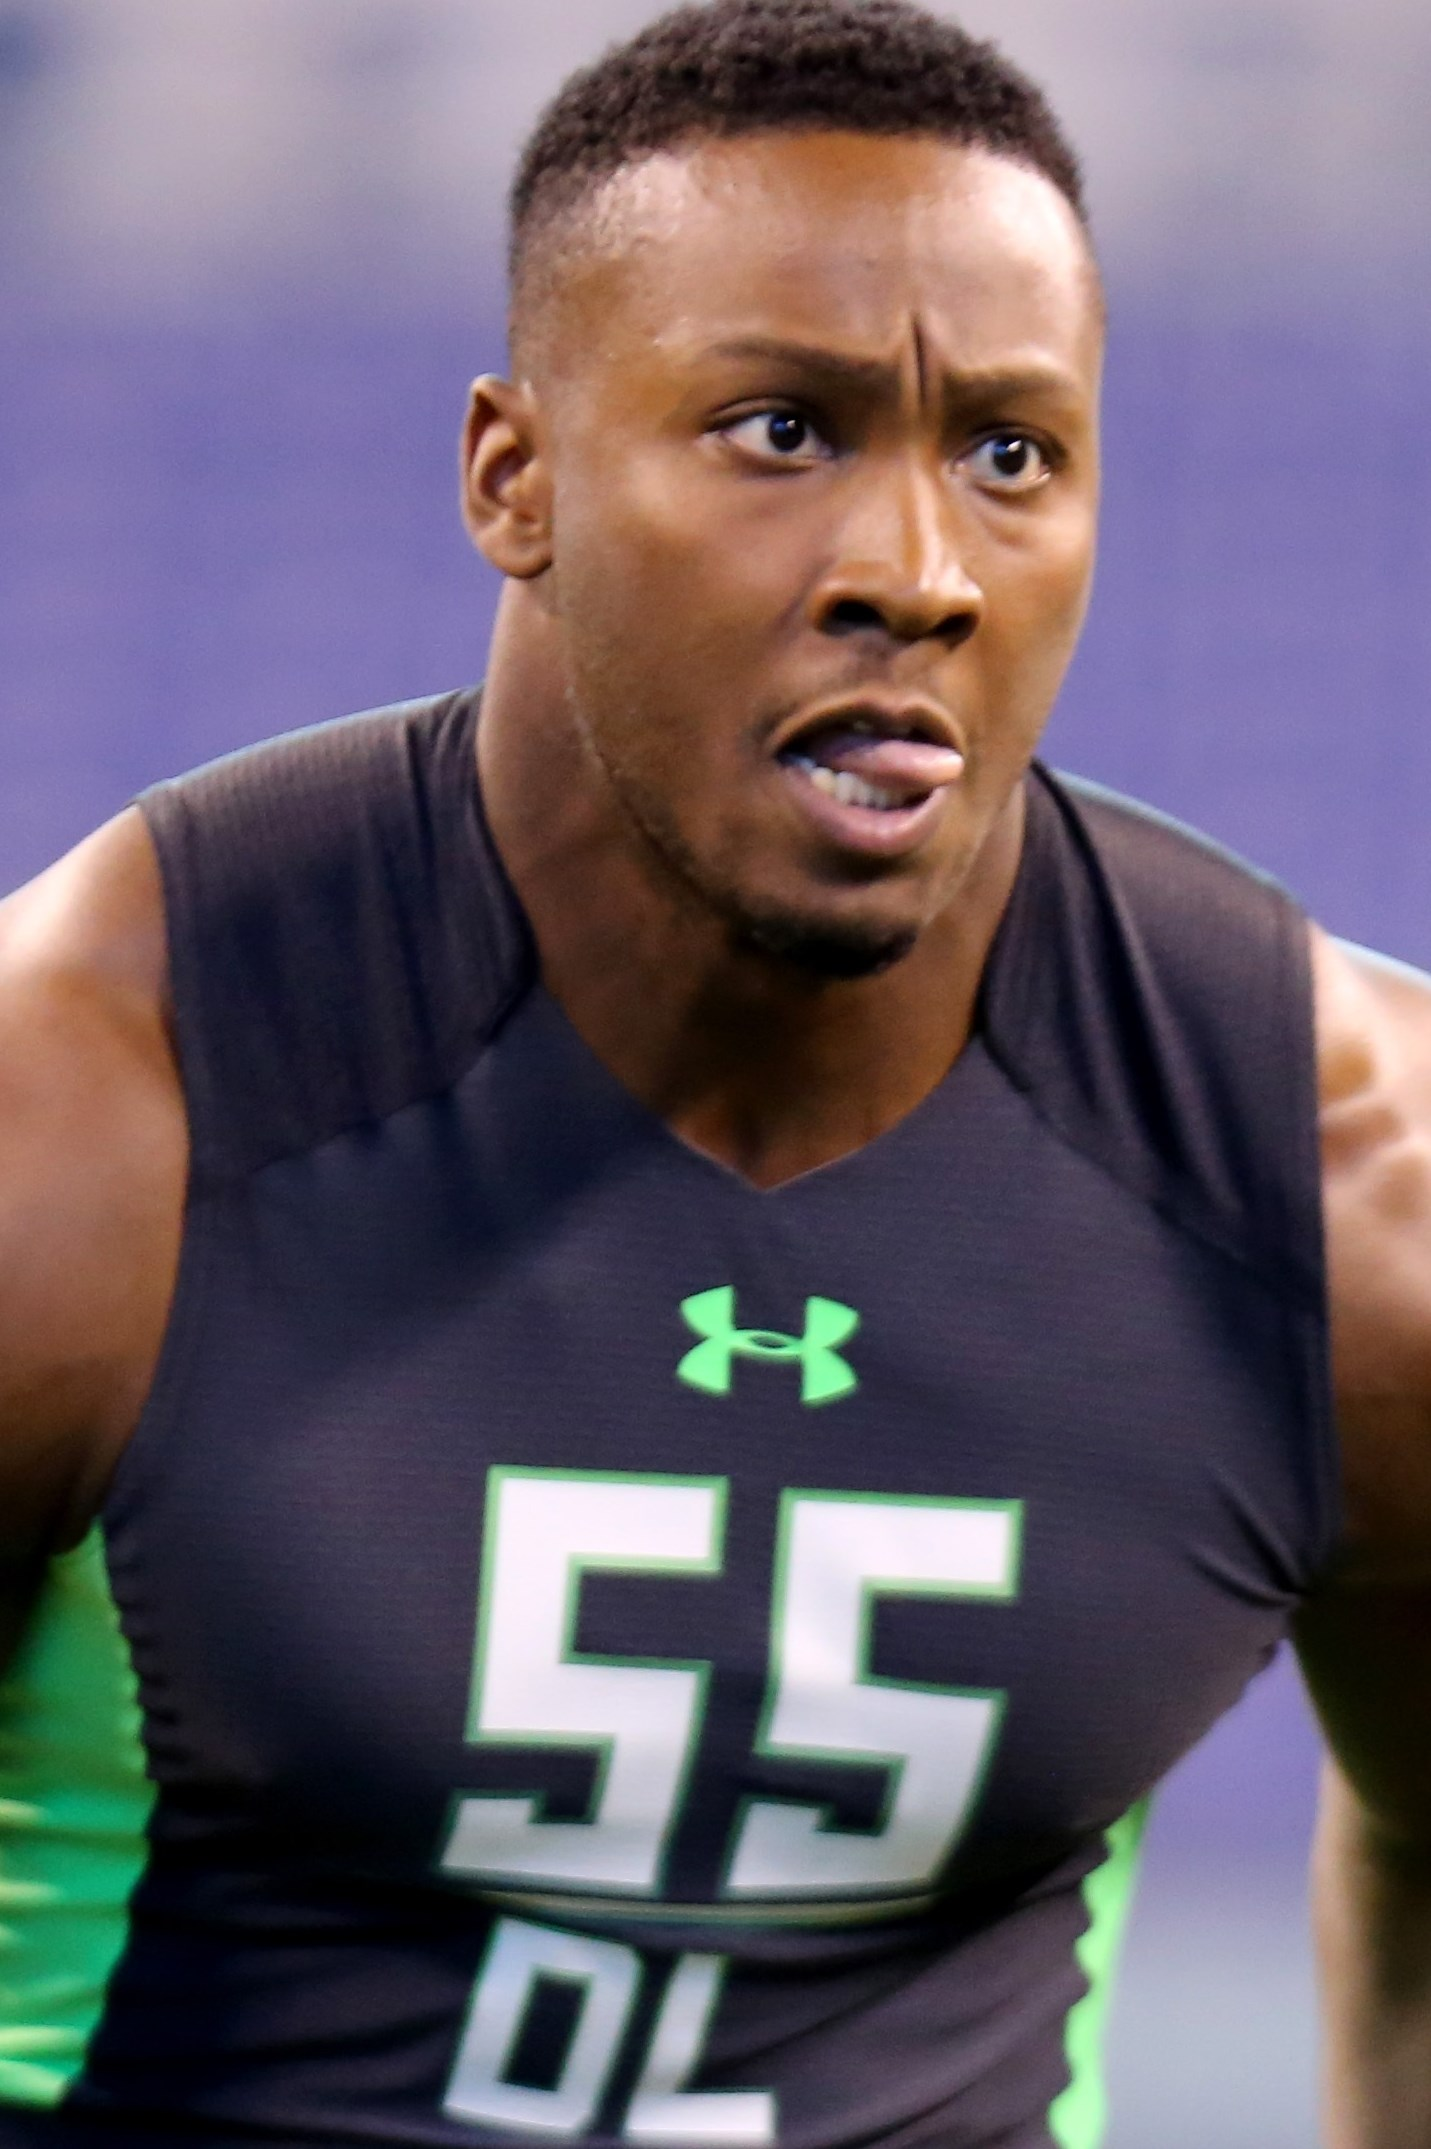 Eastern Kentucky defensive lineman Noah Spence performs a drill at the NFL football scouting combine Sunday, Feb. 28, 2016, in Indianapolis. (AP Photo/Gregory Payan)